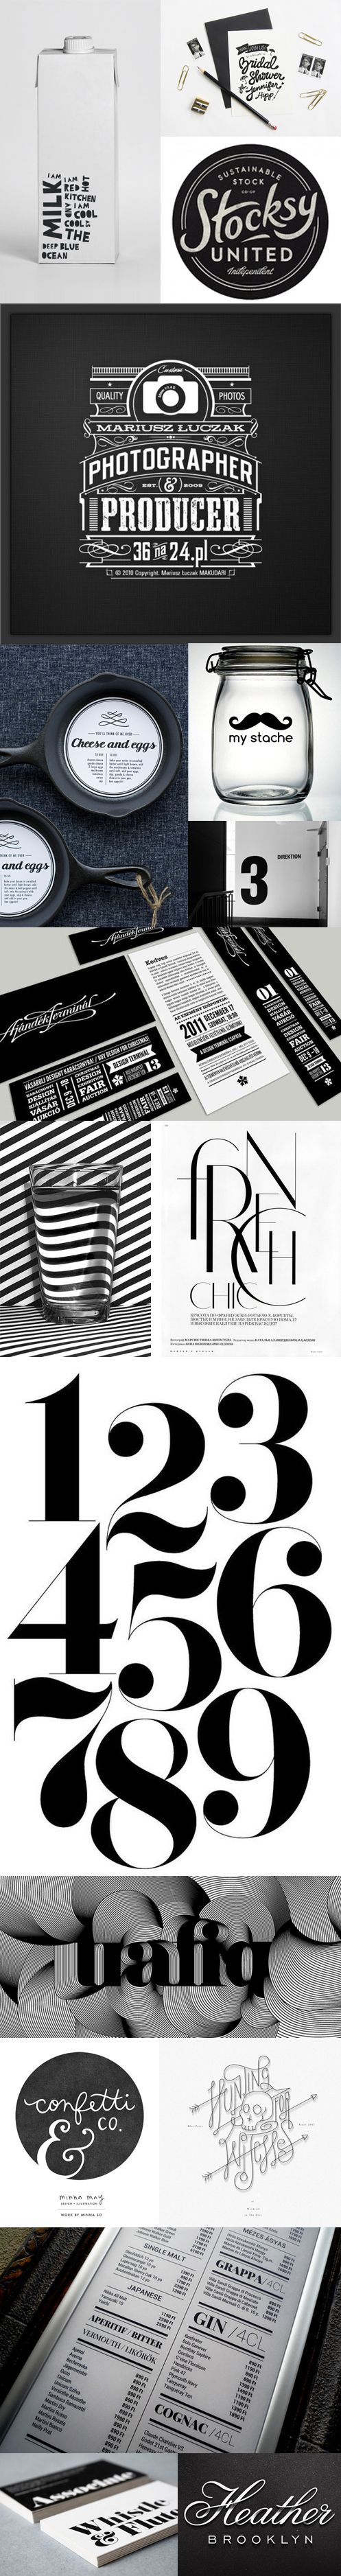 Black and White Design #Design #Collage #Black #White #Typography